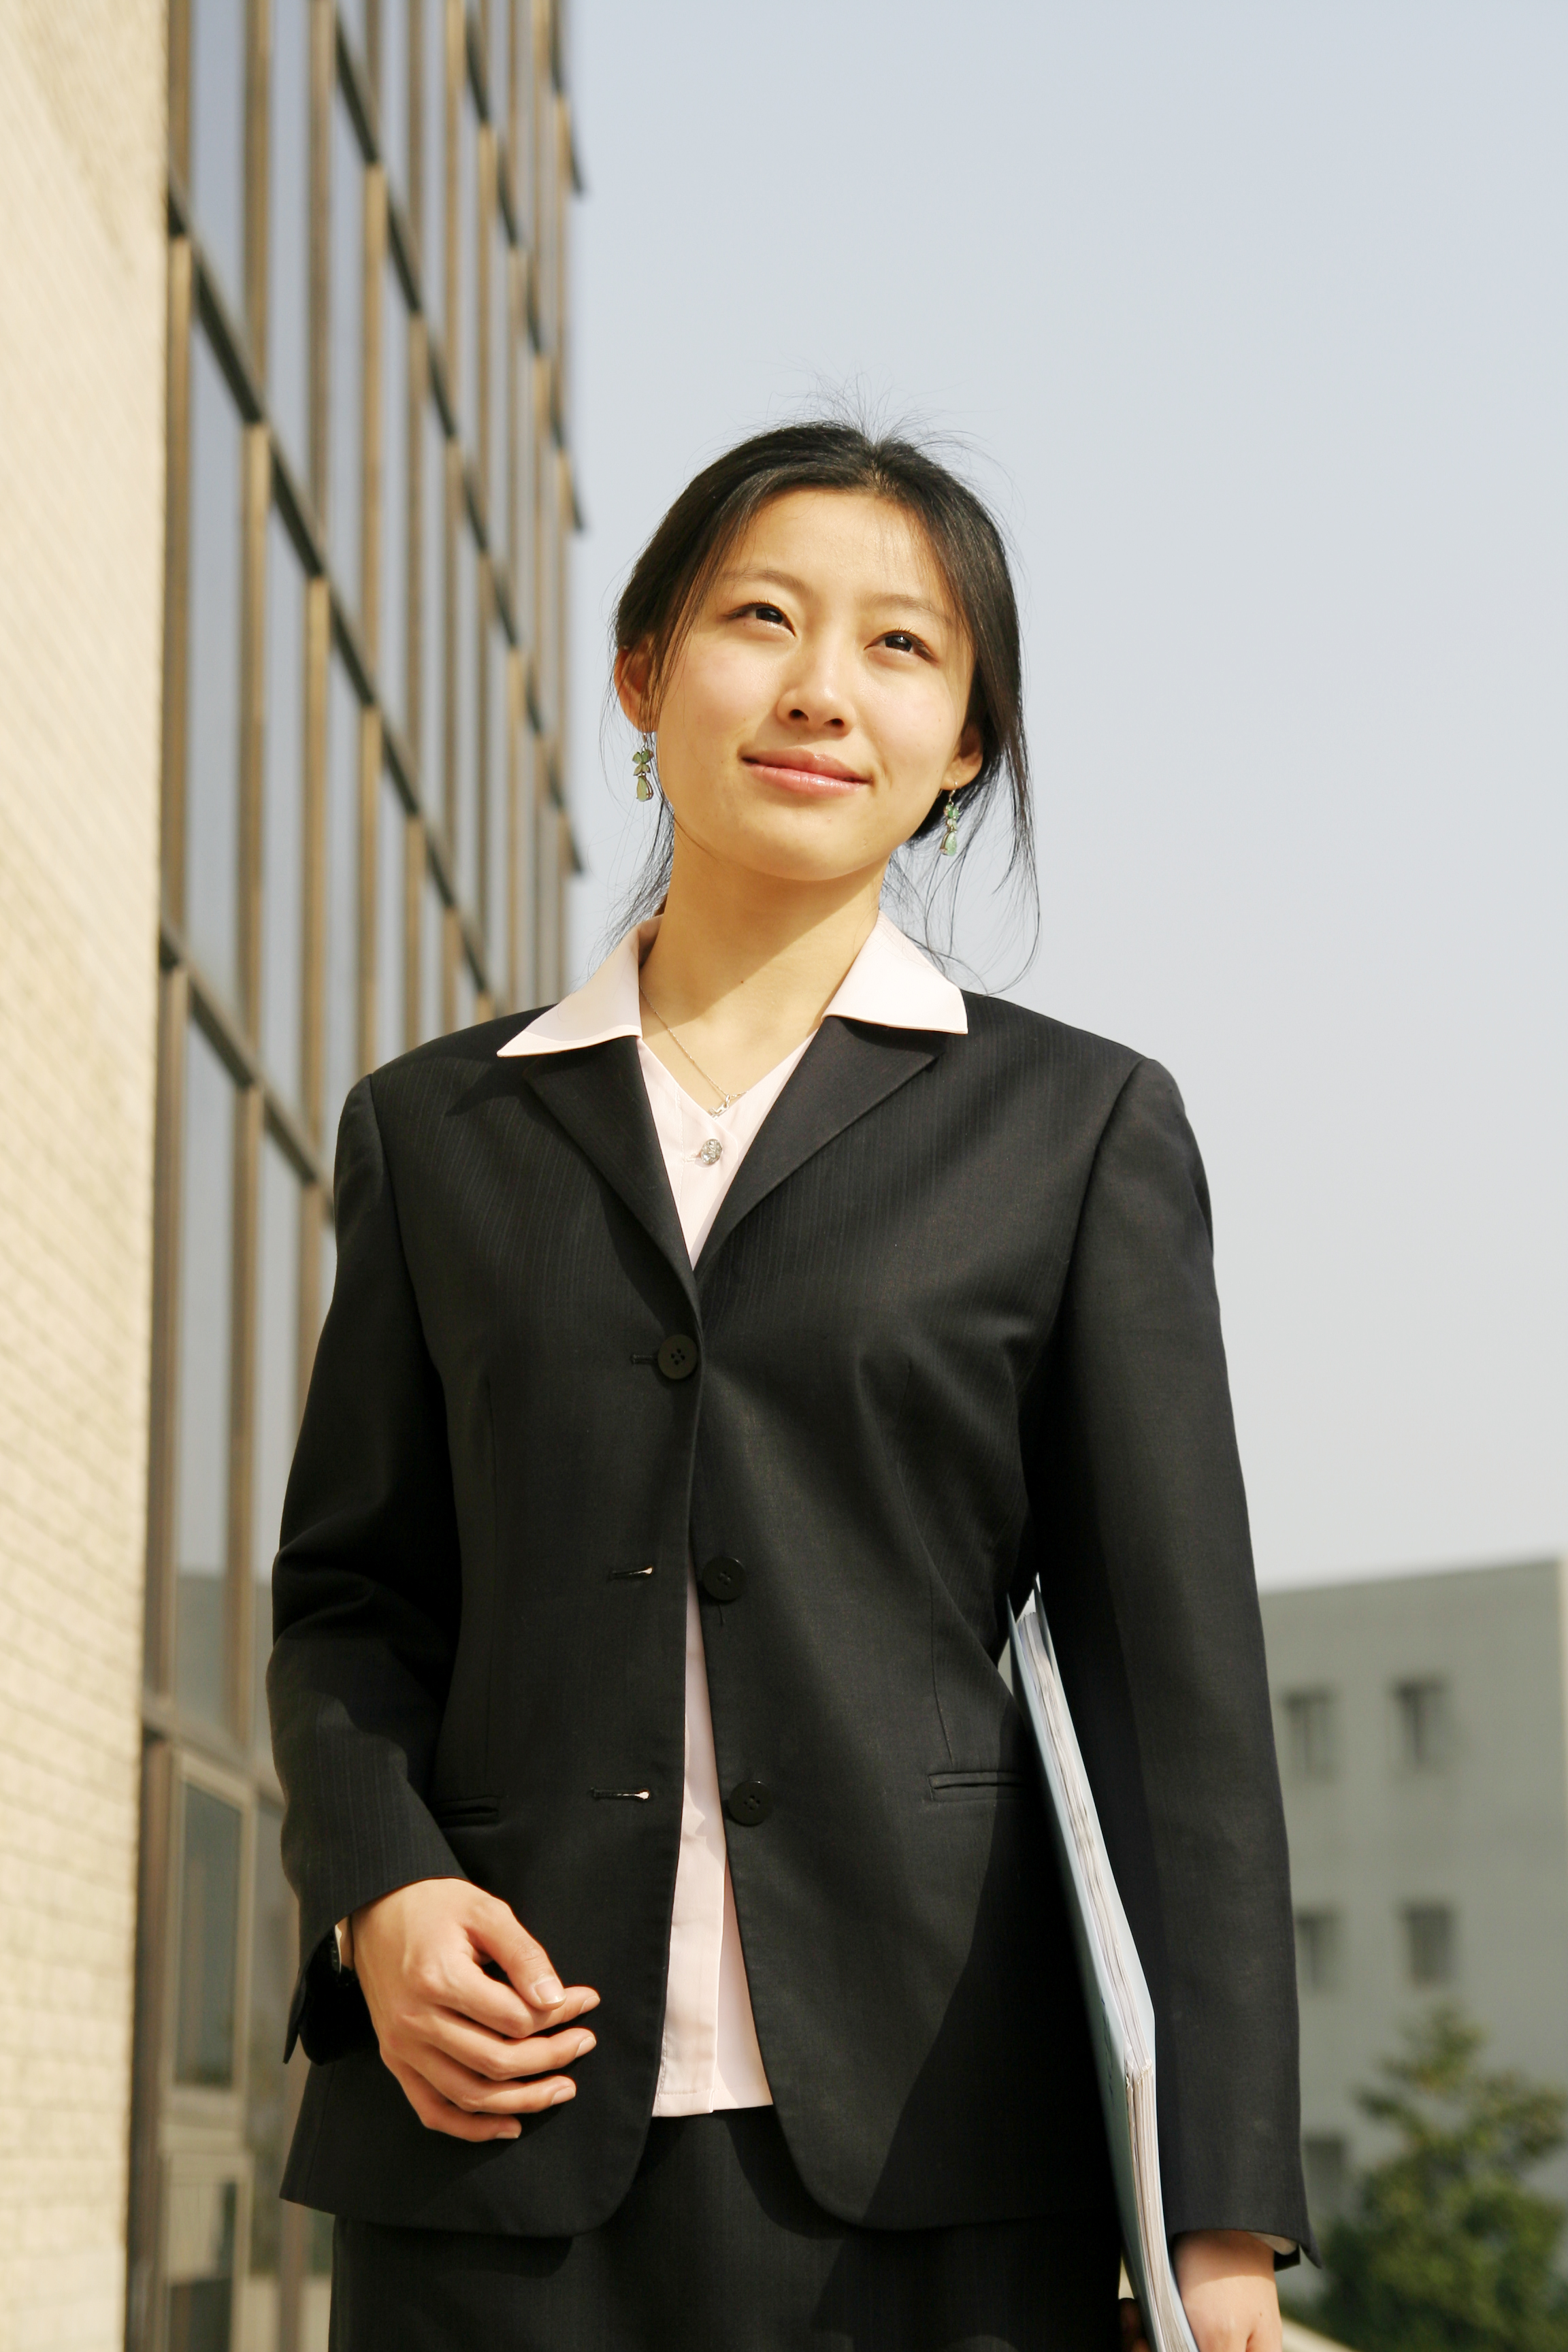 chinese-business-woman.jpg